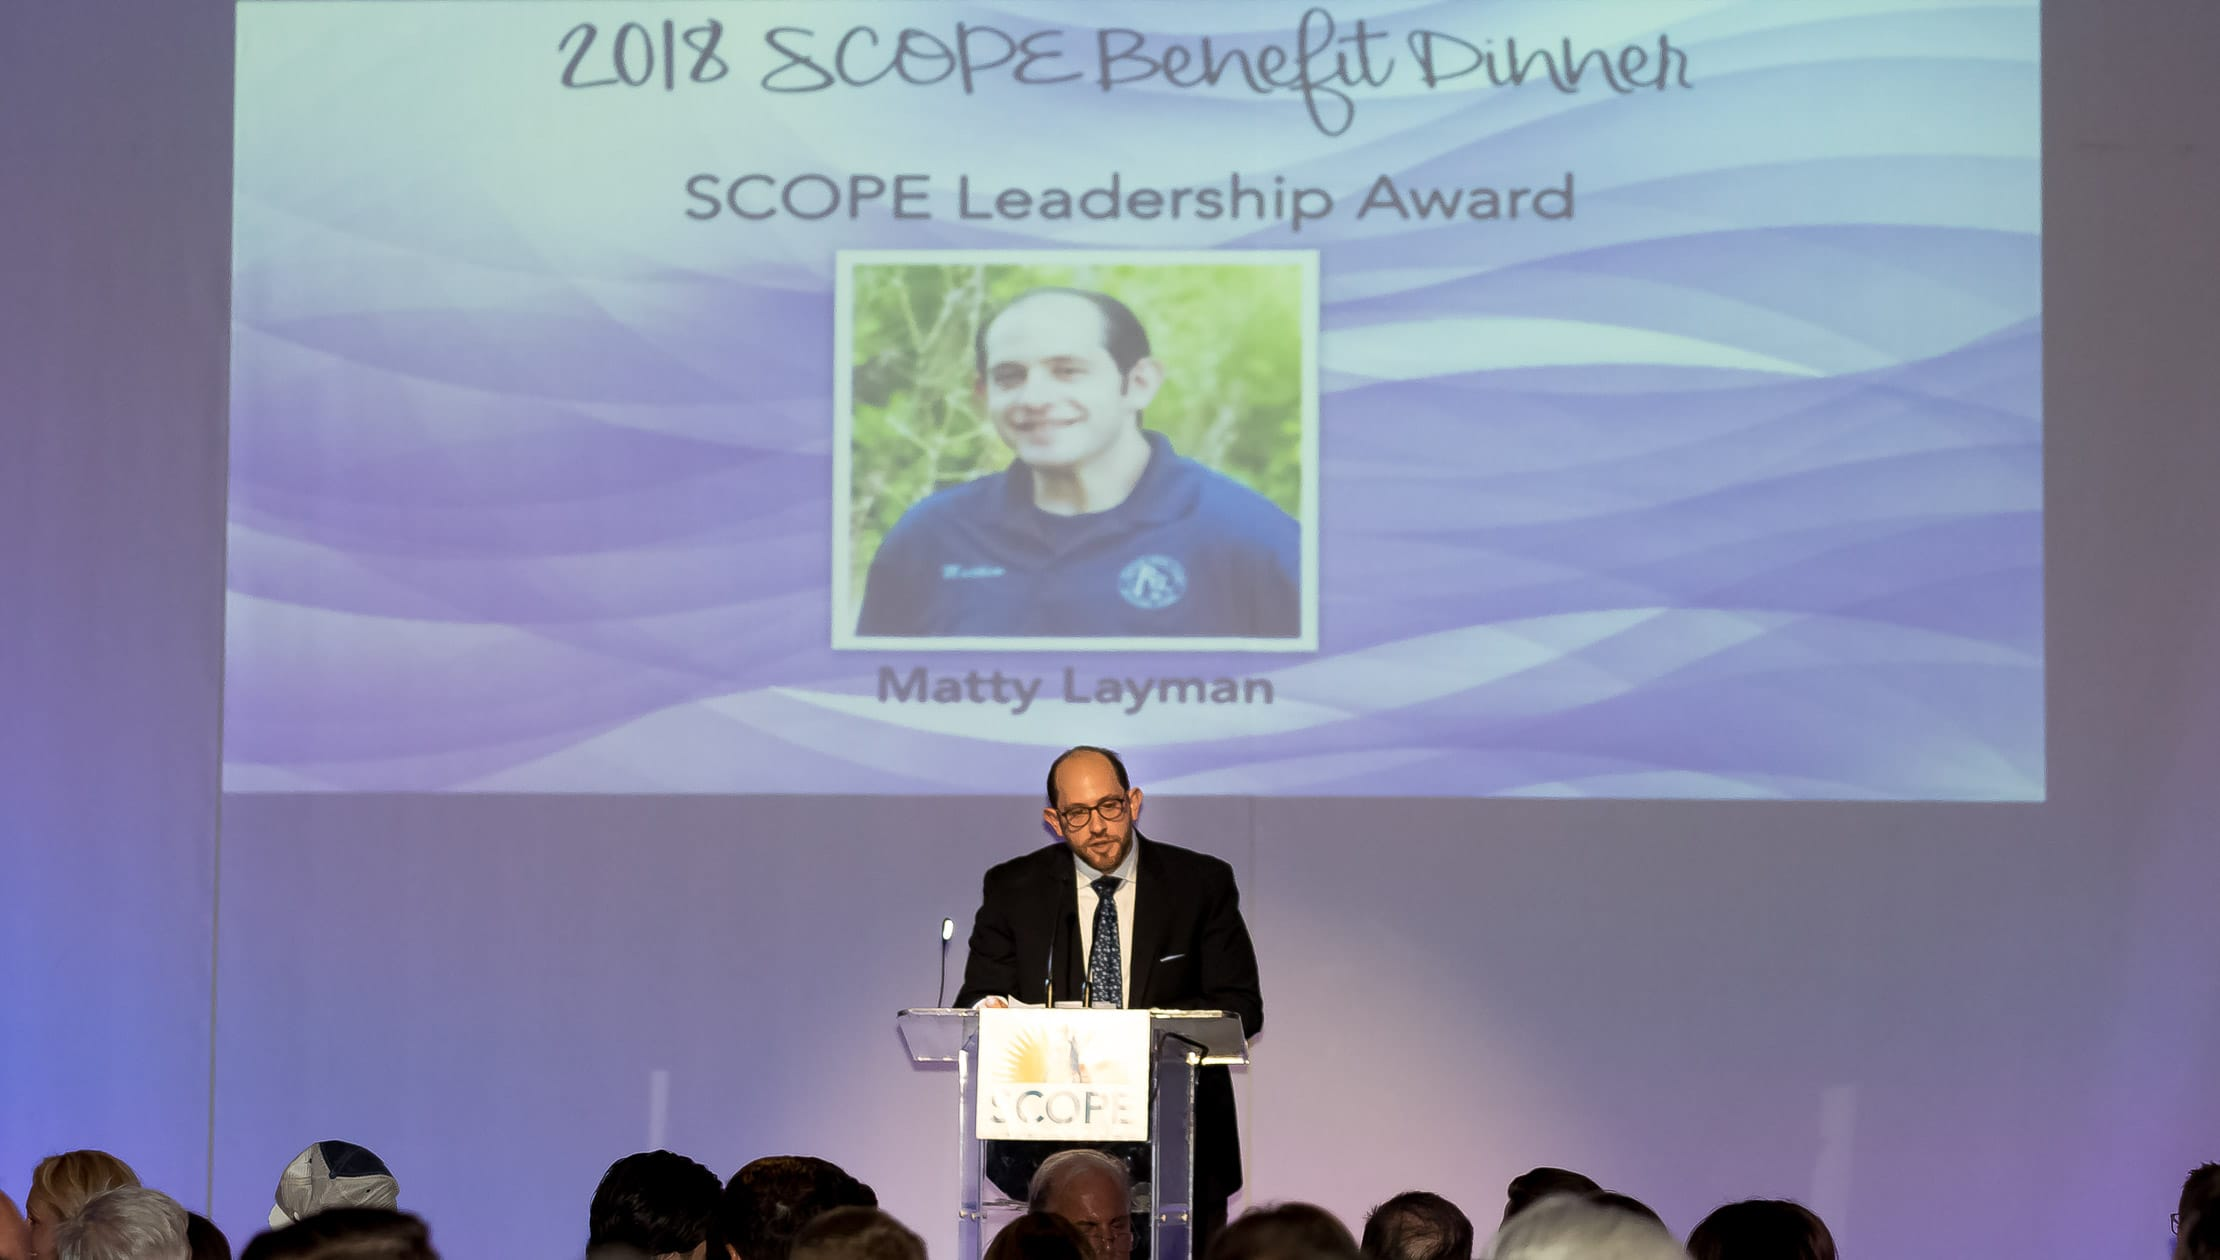 Matty speaking at SCOPE Benefit Dinner